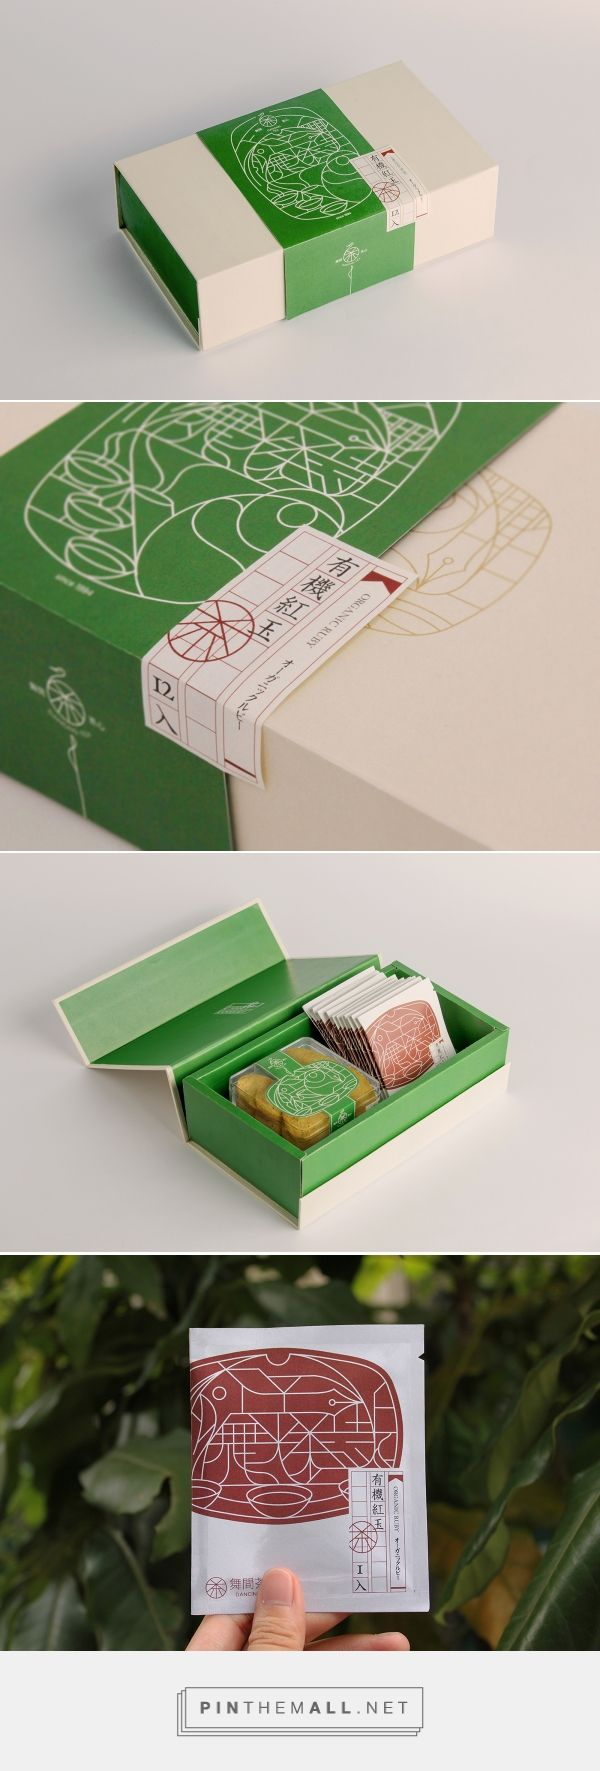 舞間茶心-舞光茶詩禮盒|Dancing Tea Packaging on Behance - created via https ...